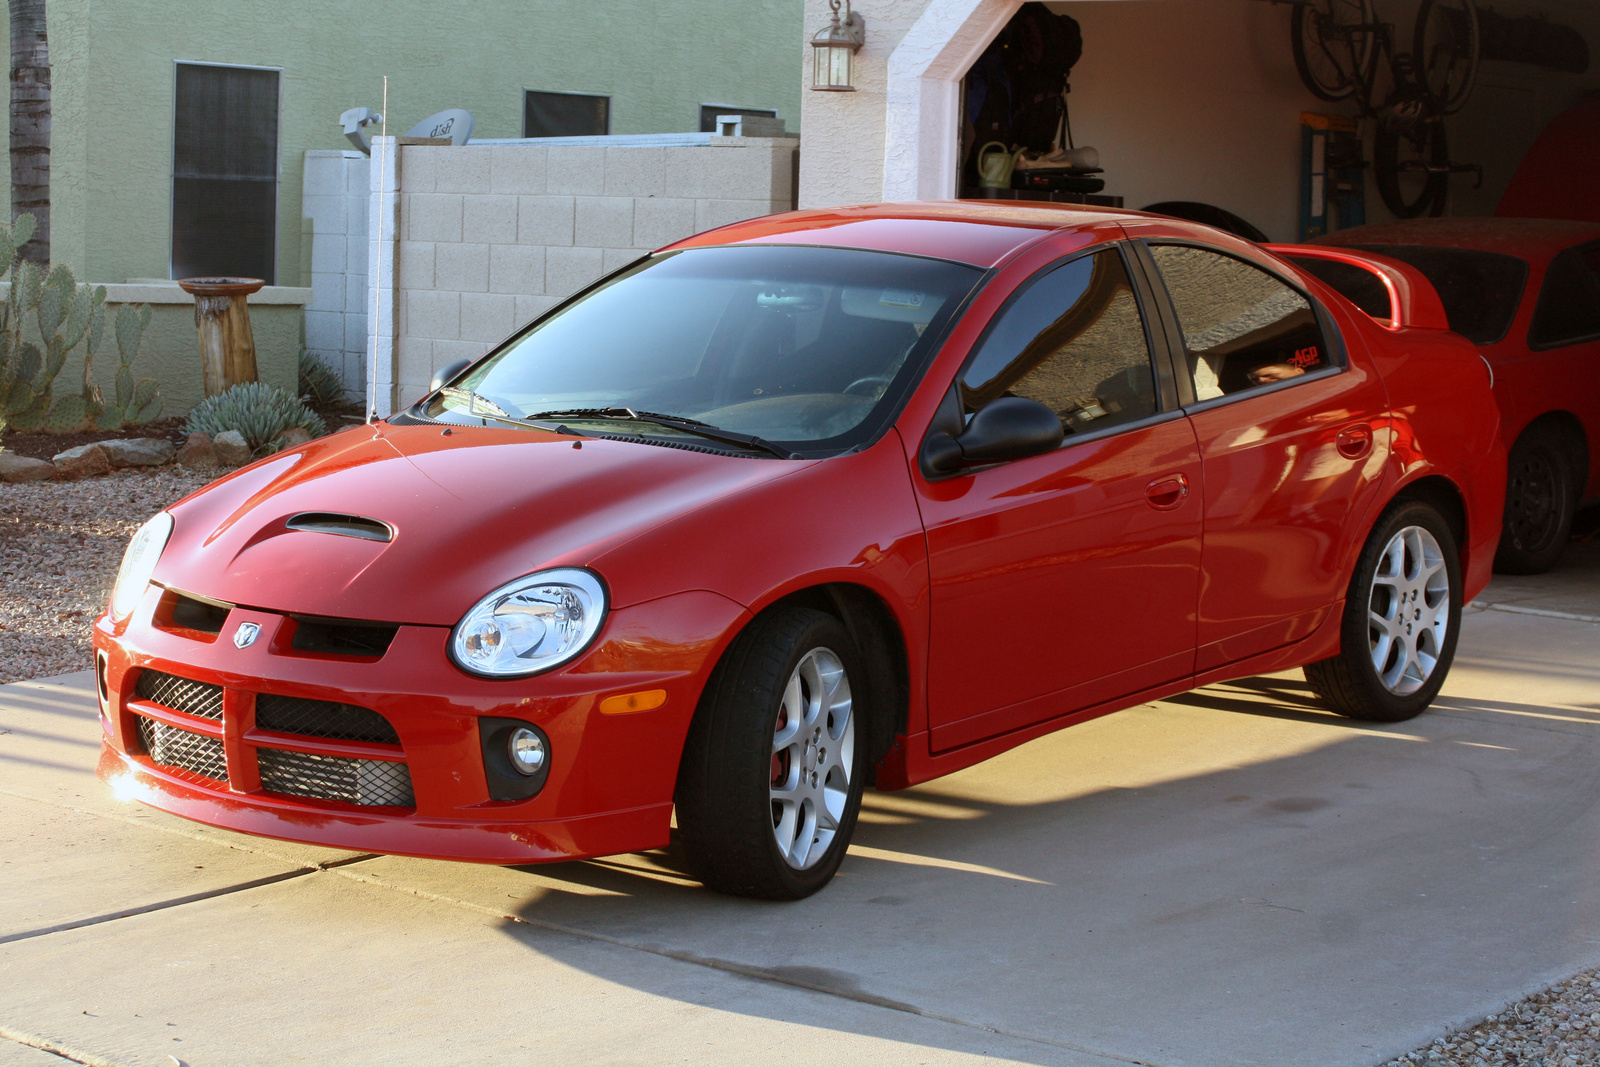 dodge neon srt 4 pictures posters news and videos on your pursuit hobbies interests and. Black Bedroom Furniture Sets. Home Design Ideas